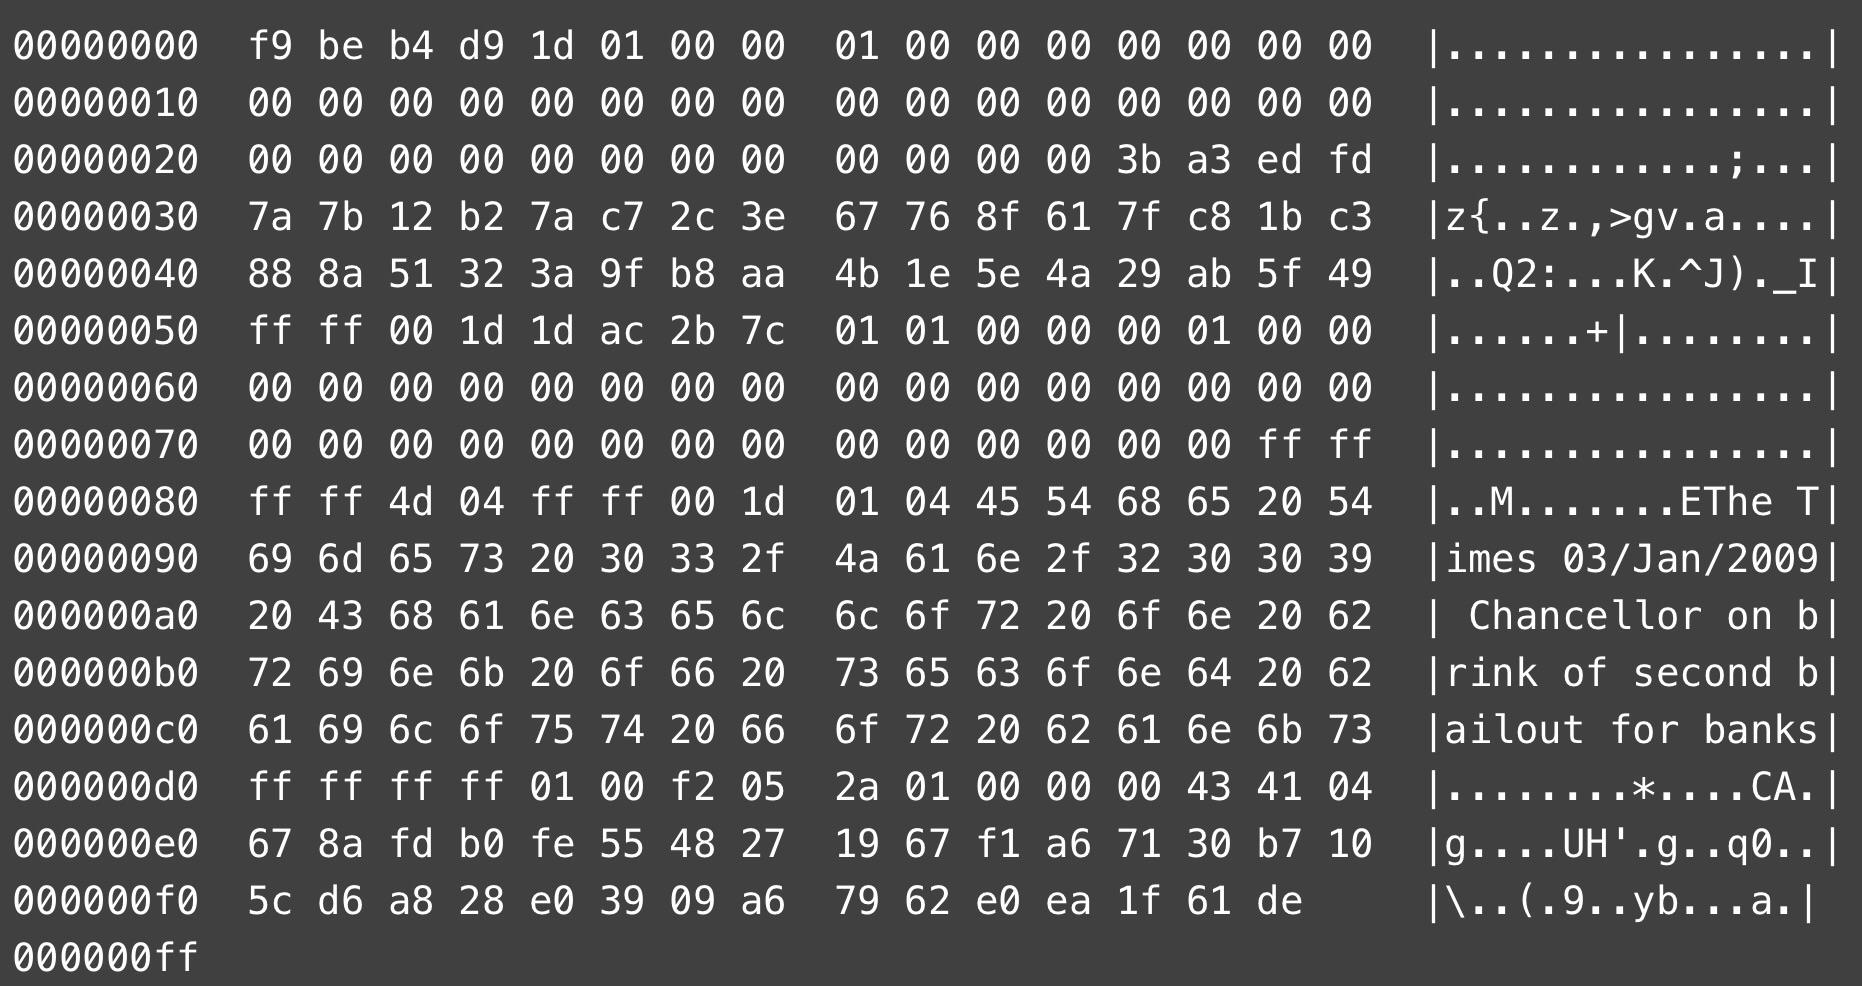 Hex view of Bitcoin Block 0 with ASCII decoding to the right. | Credit: Trustnodes.com